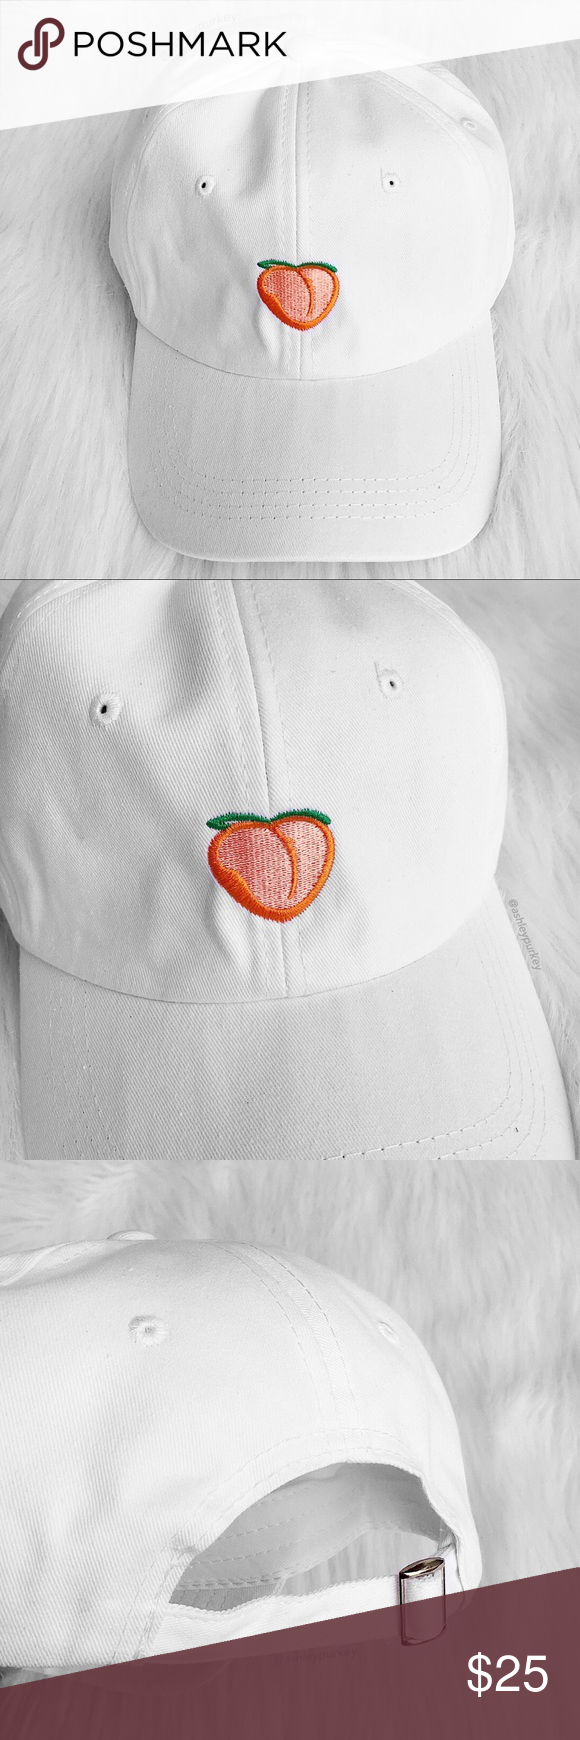 Pink peach embroidered white baseball hat Boutique